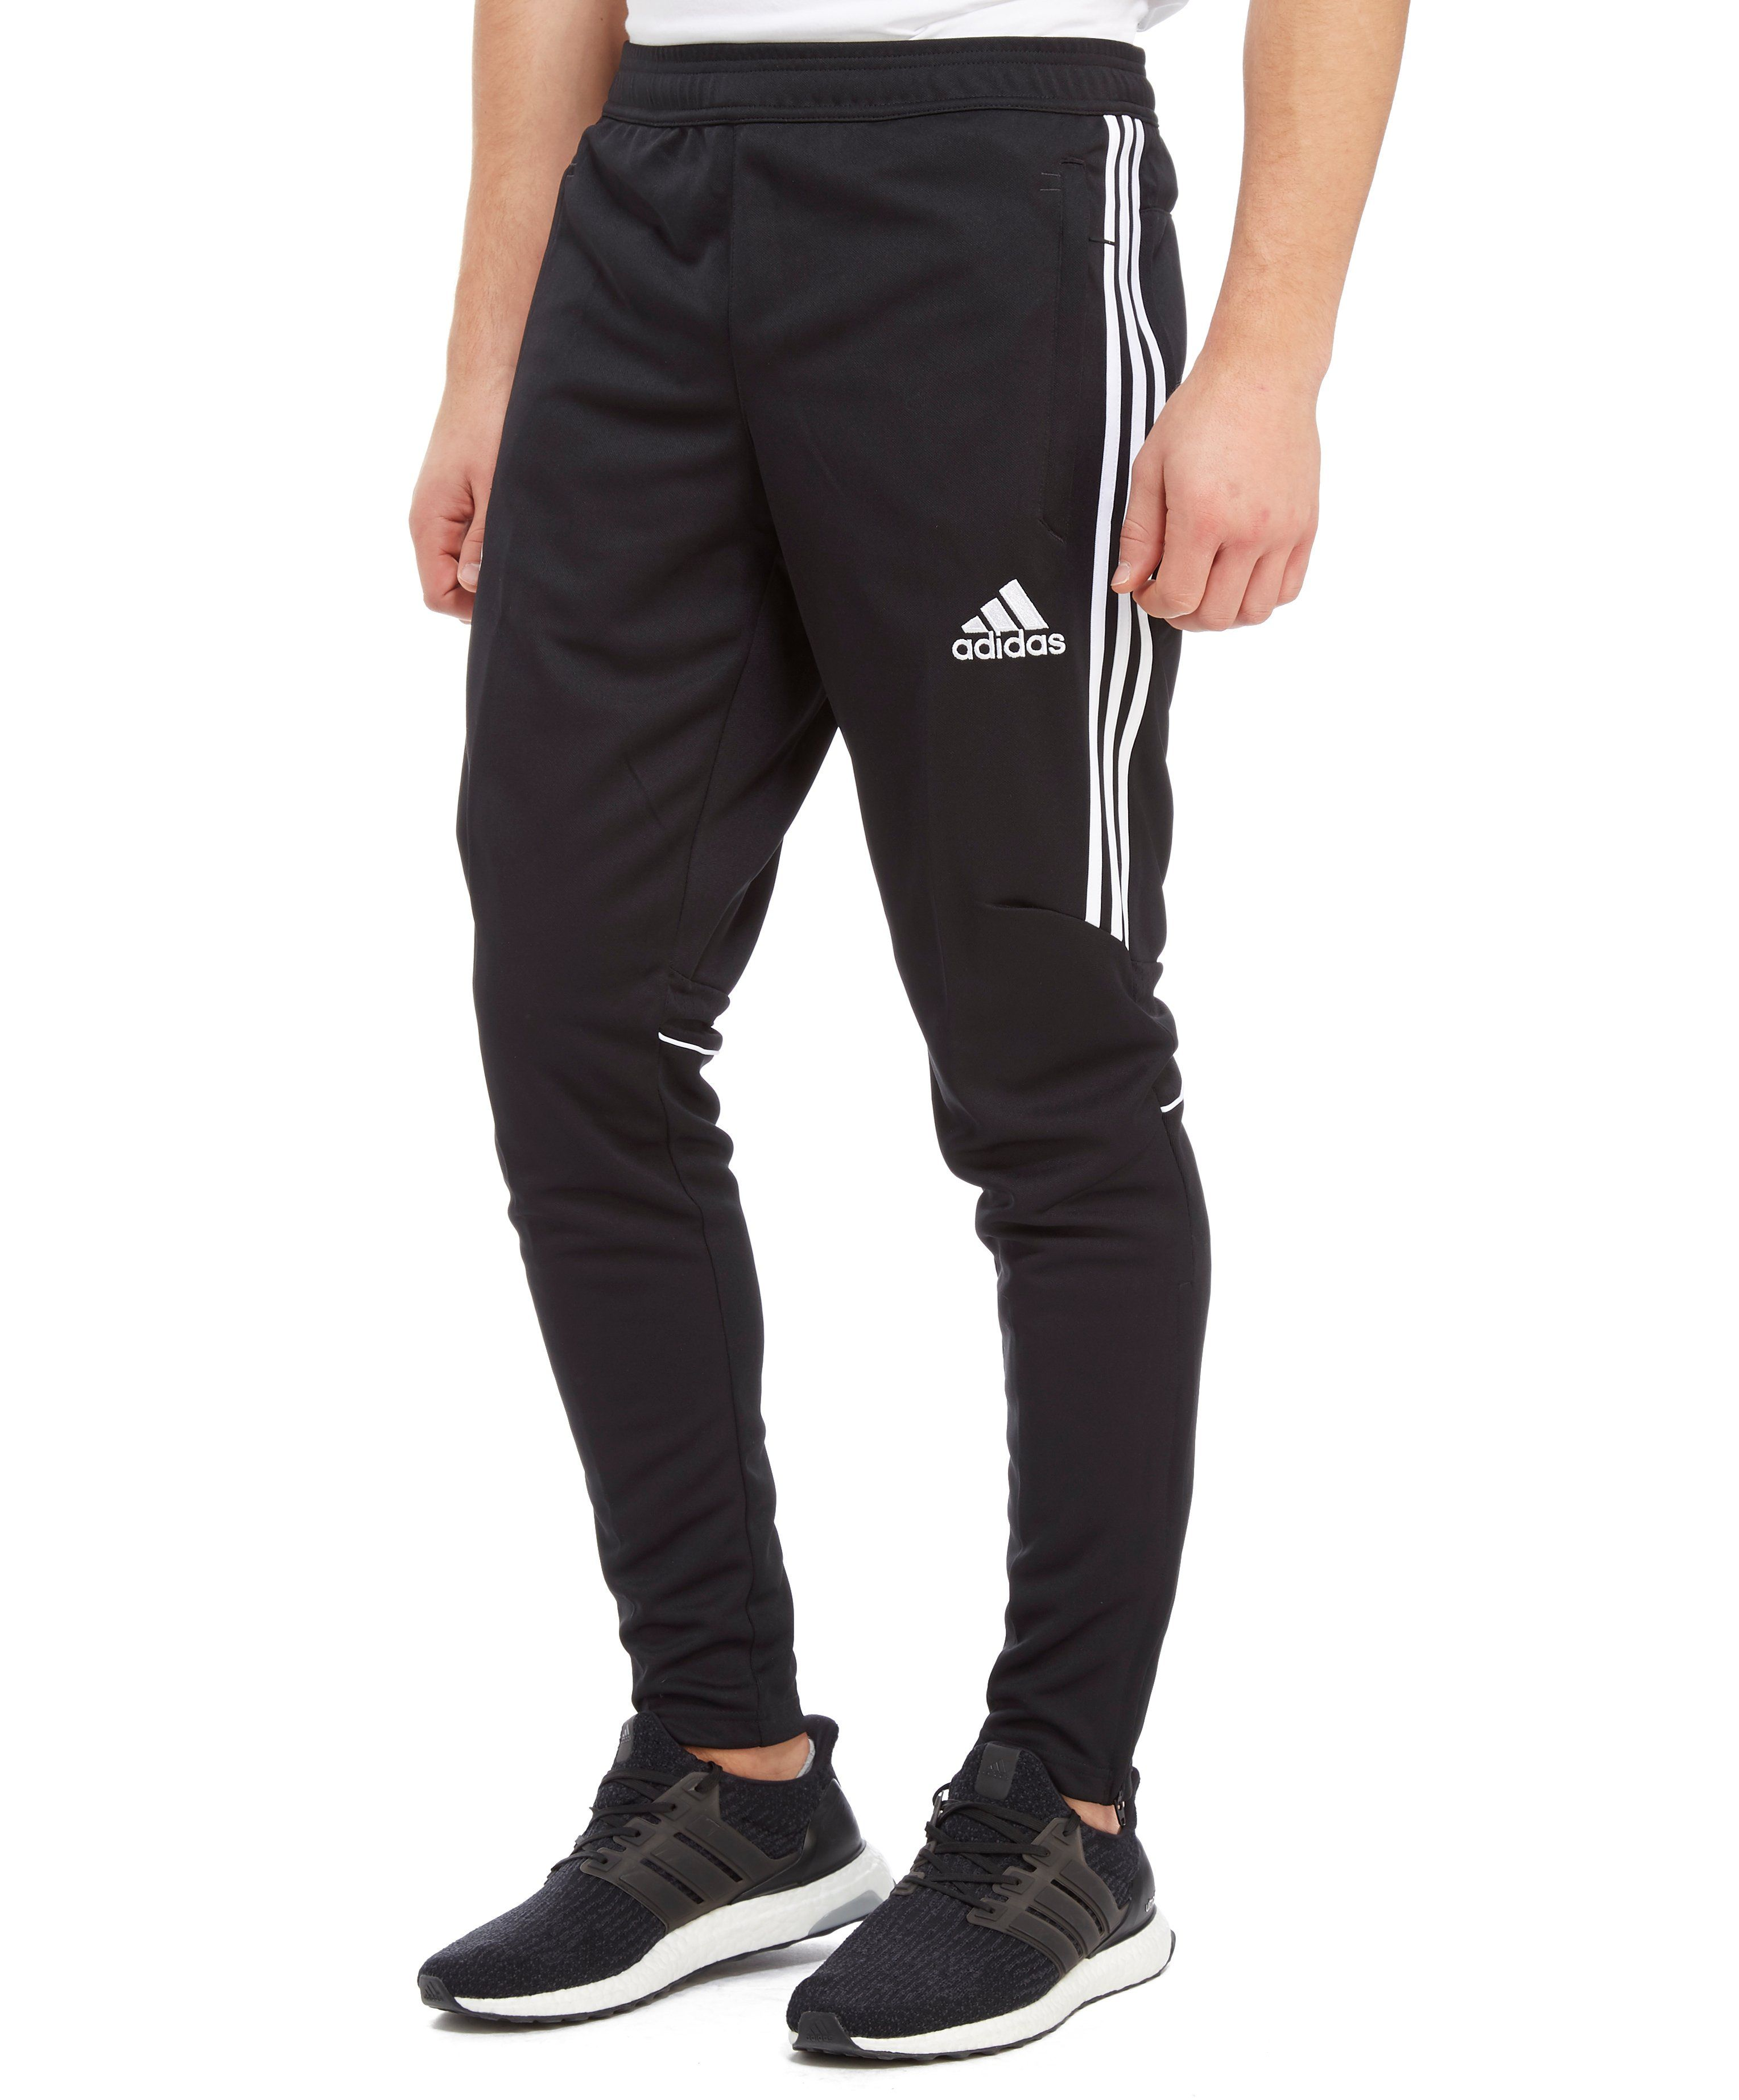 Mens Tracksuit Bottoms, Jogging Bottoms & Track Pants at JD Sports